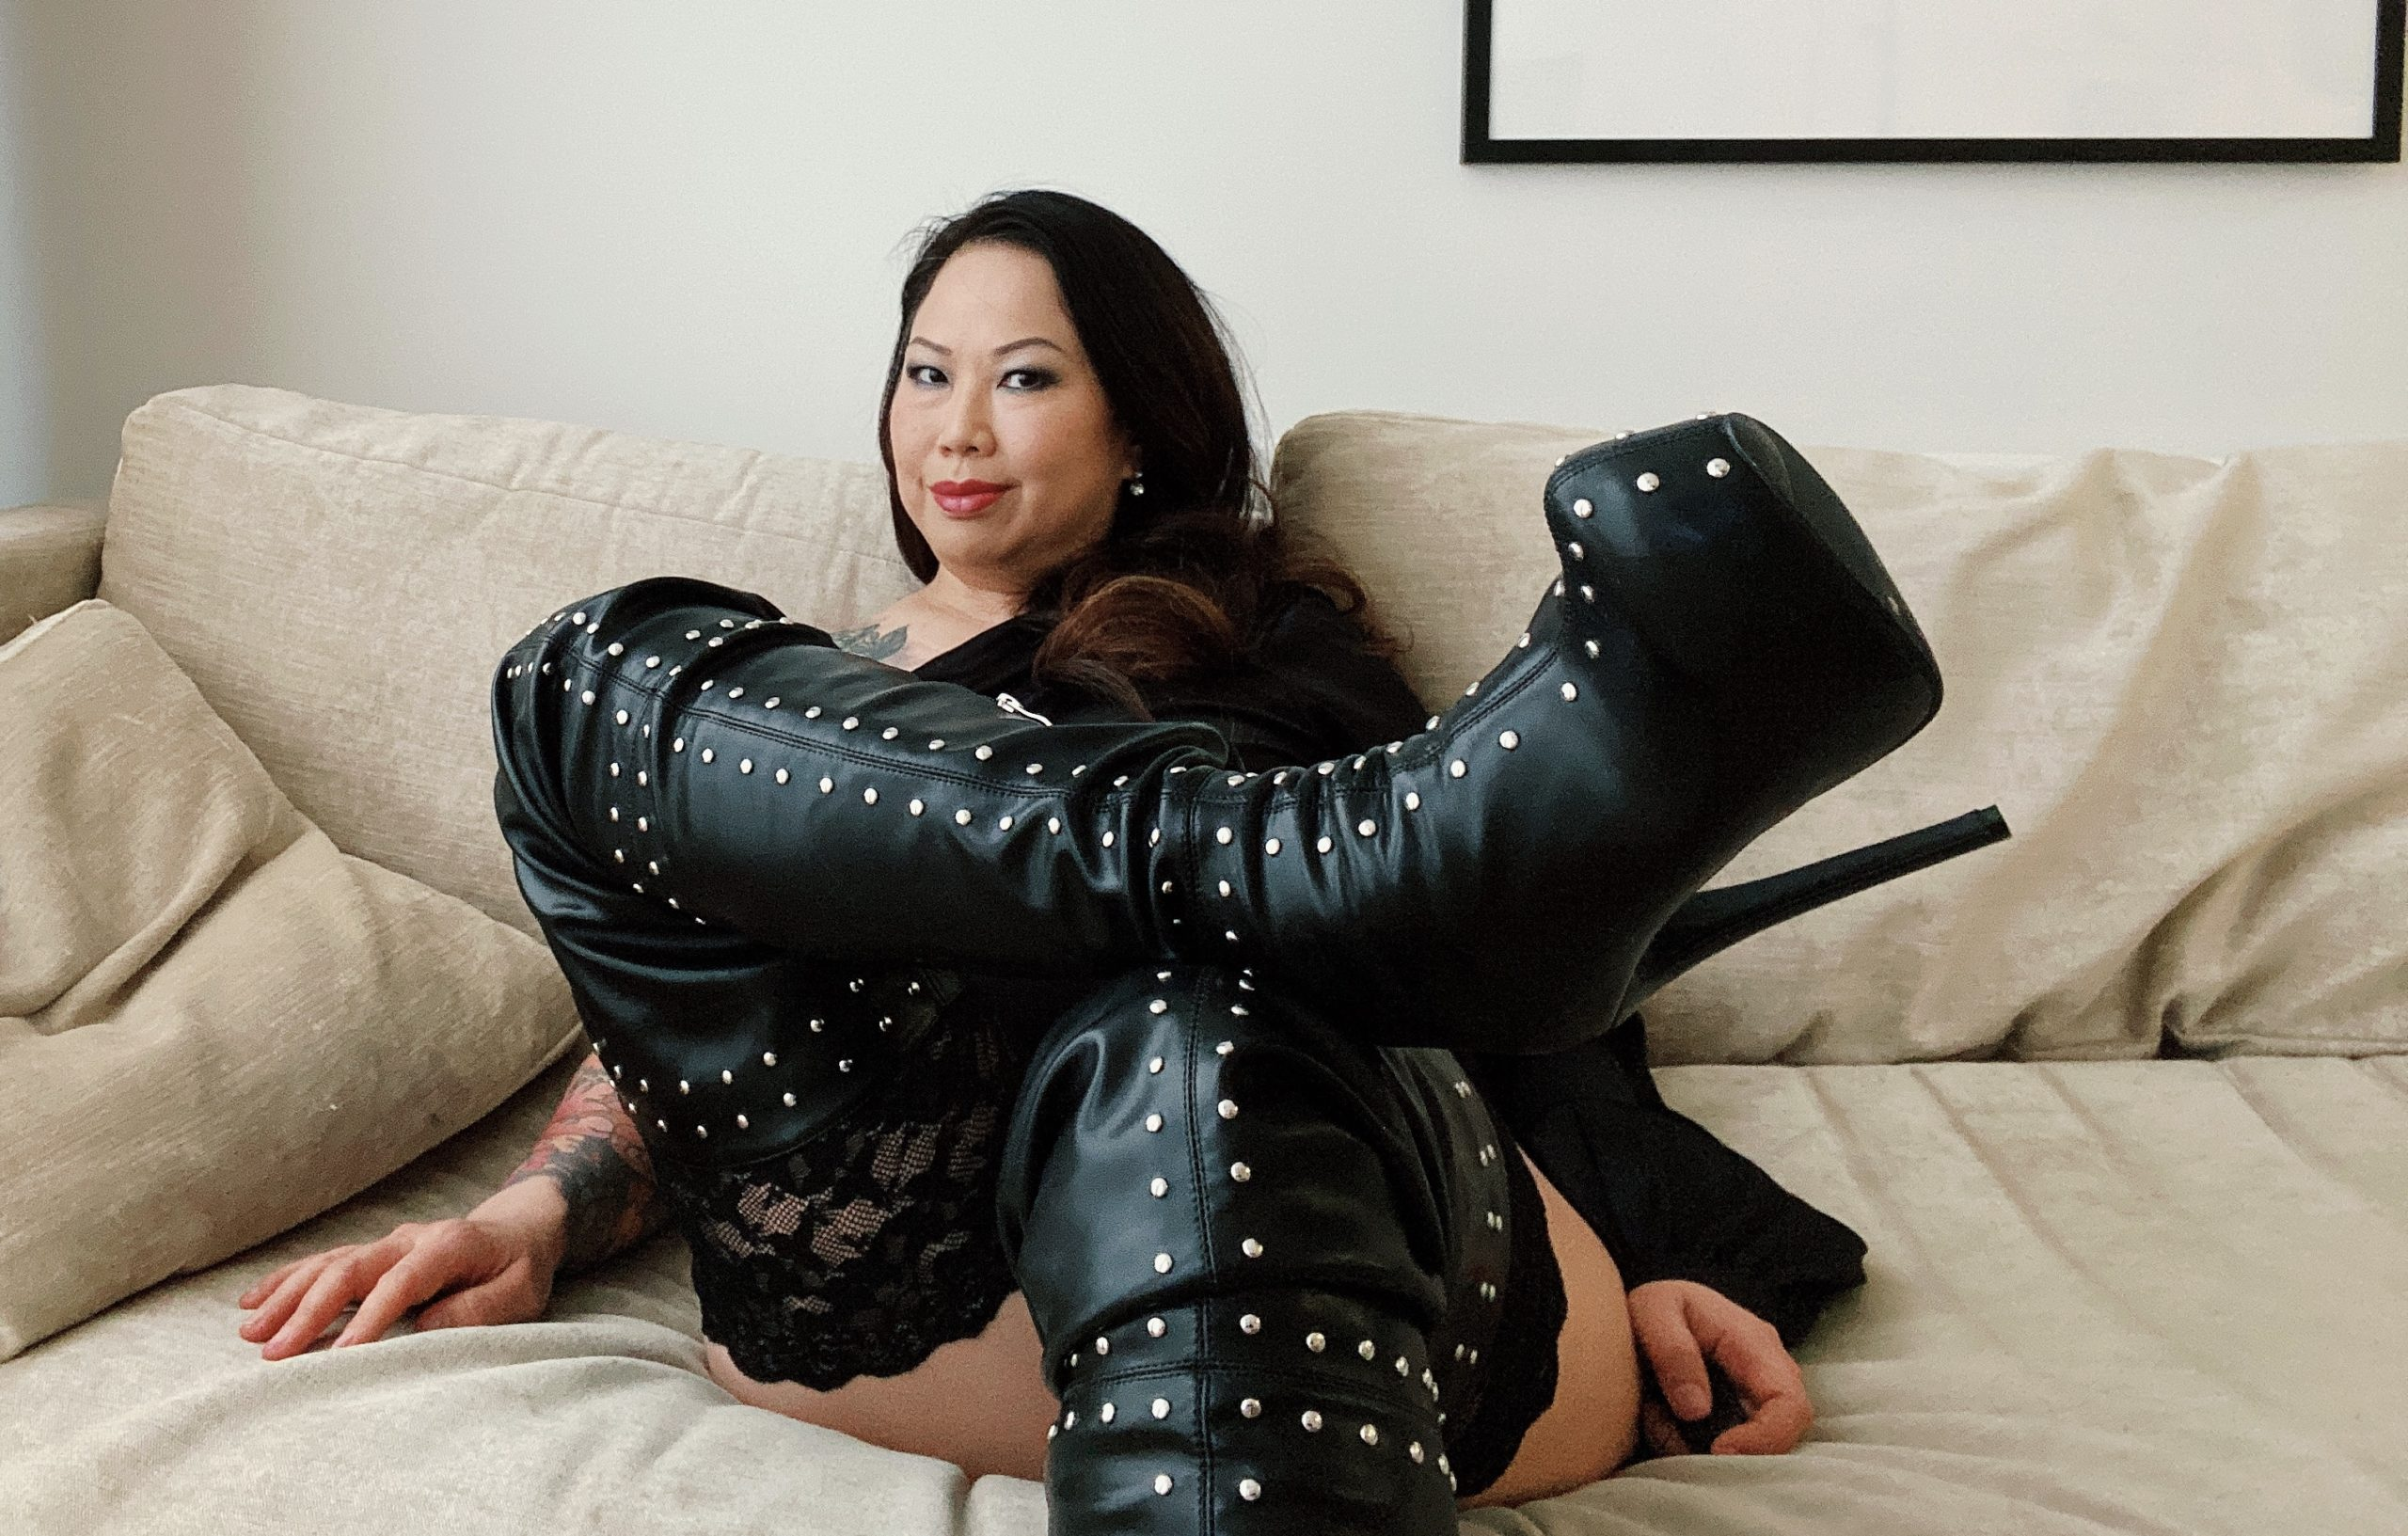 London Asian Dominatrix Madame Li Ying wearing her thigh high leather boots with stiletto heels